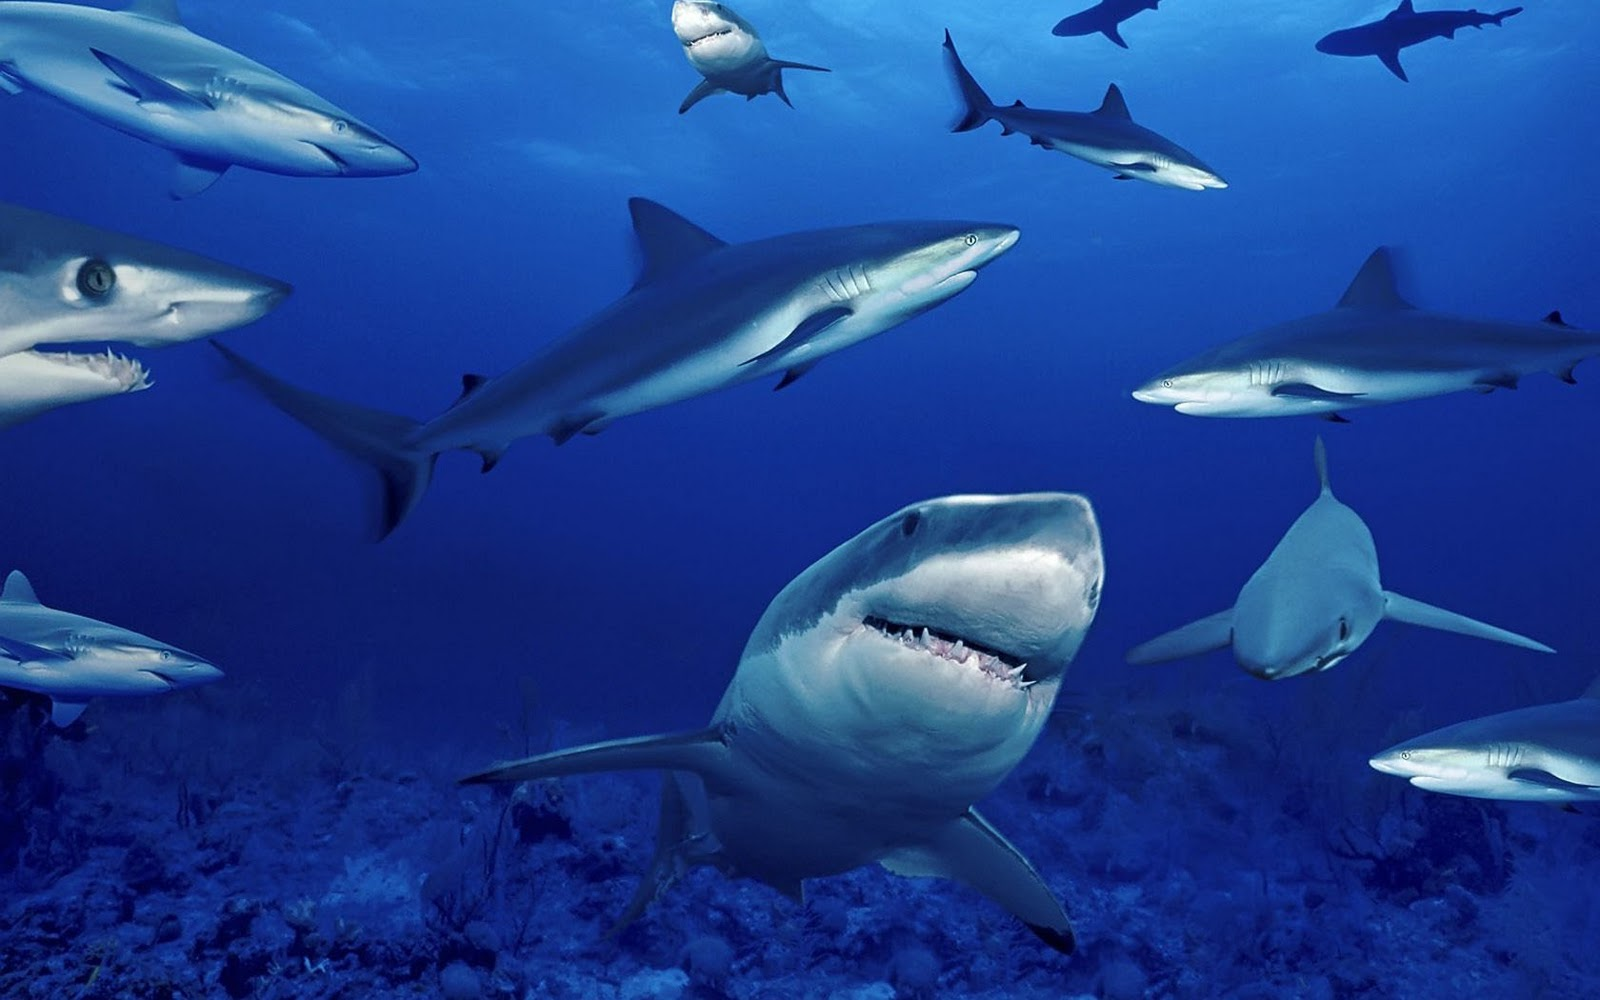 Shark Wallpaper Hd Shark Pictures Hd Animal Wallpapers